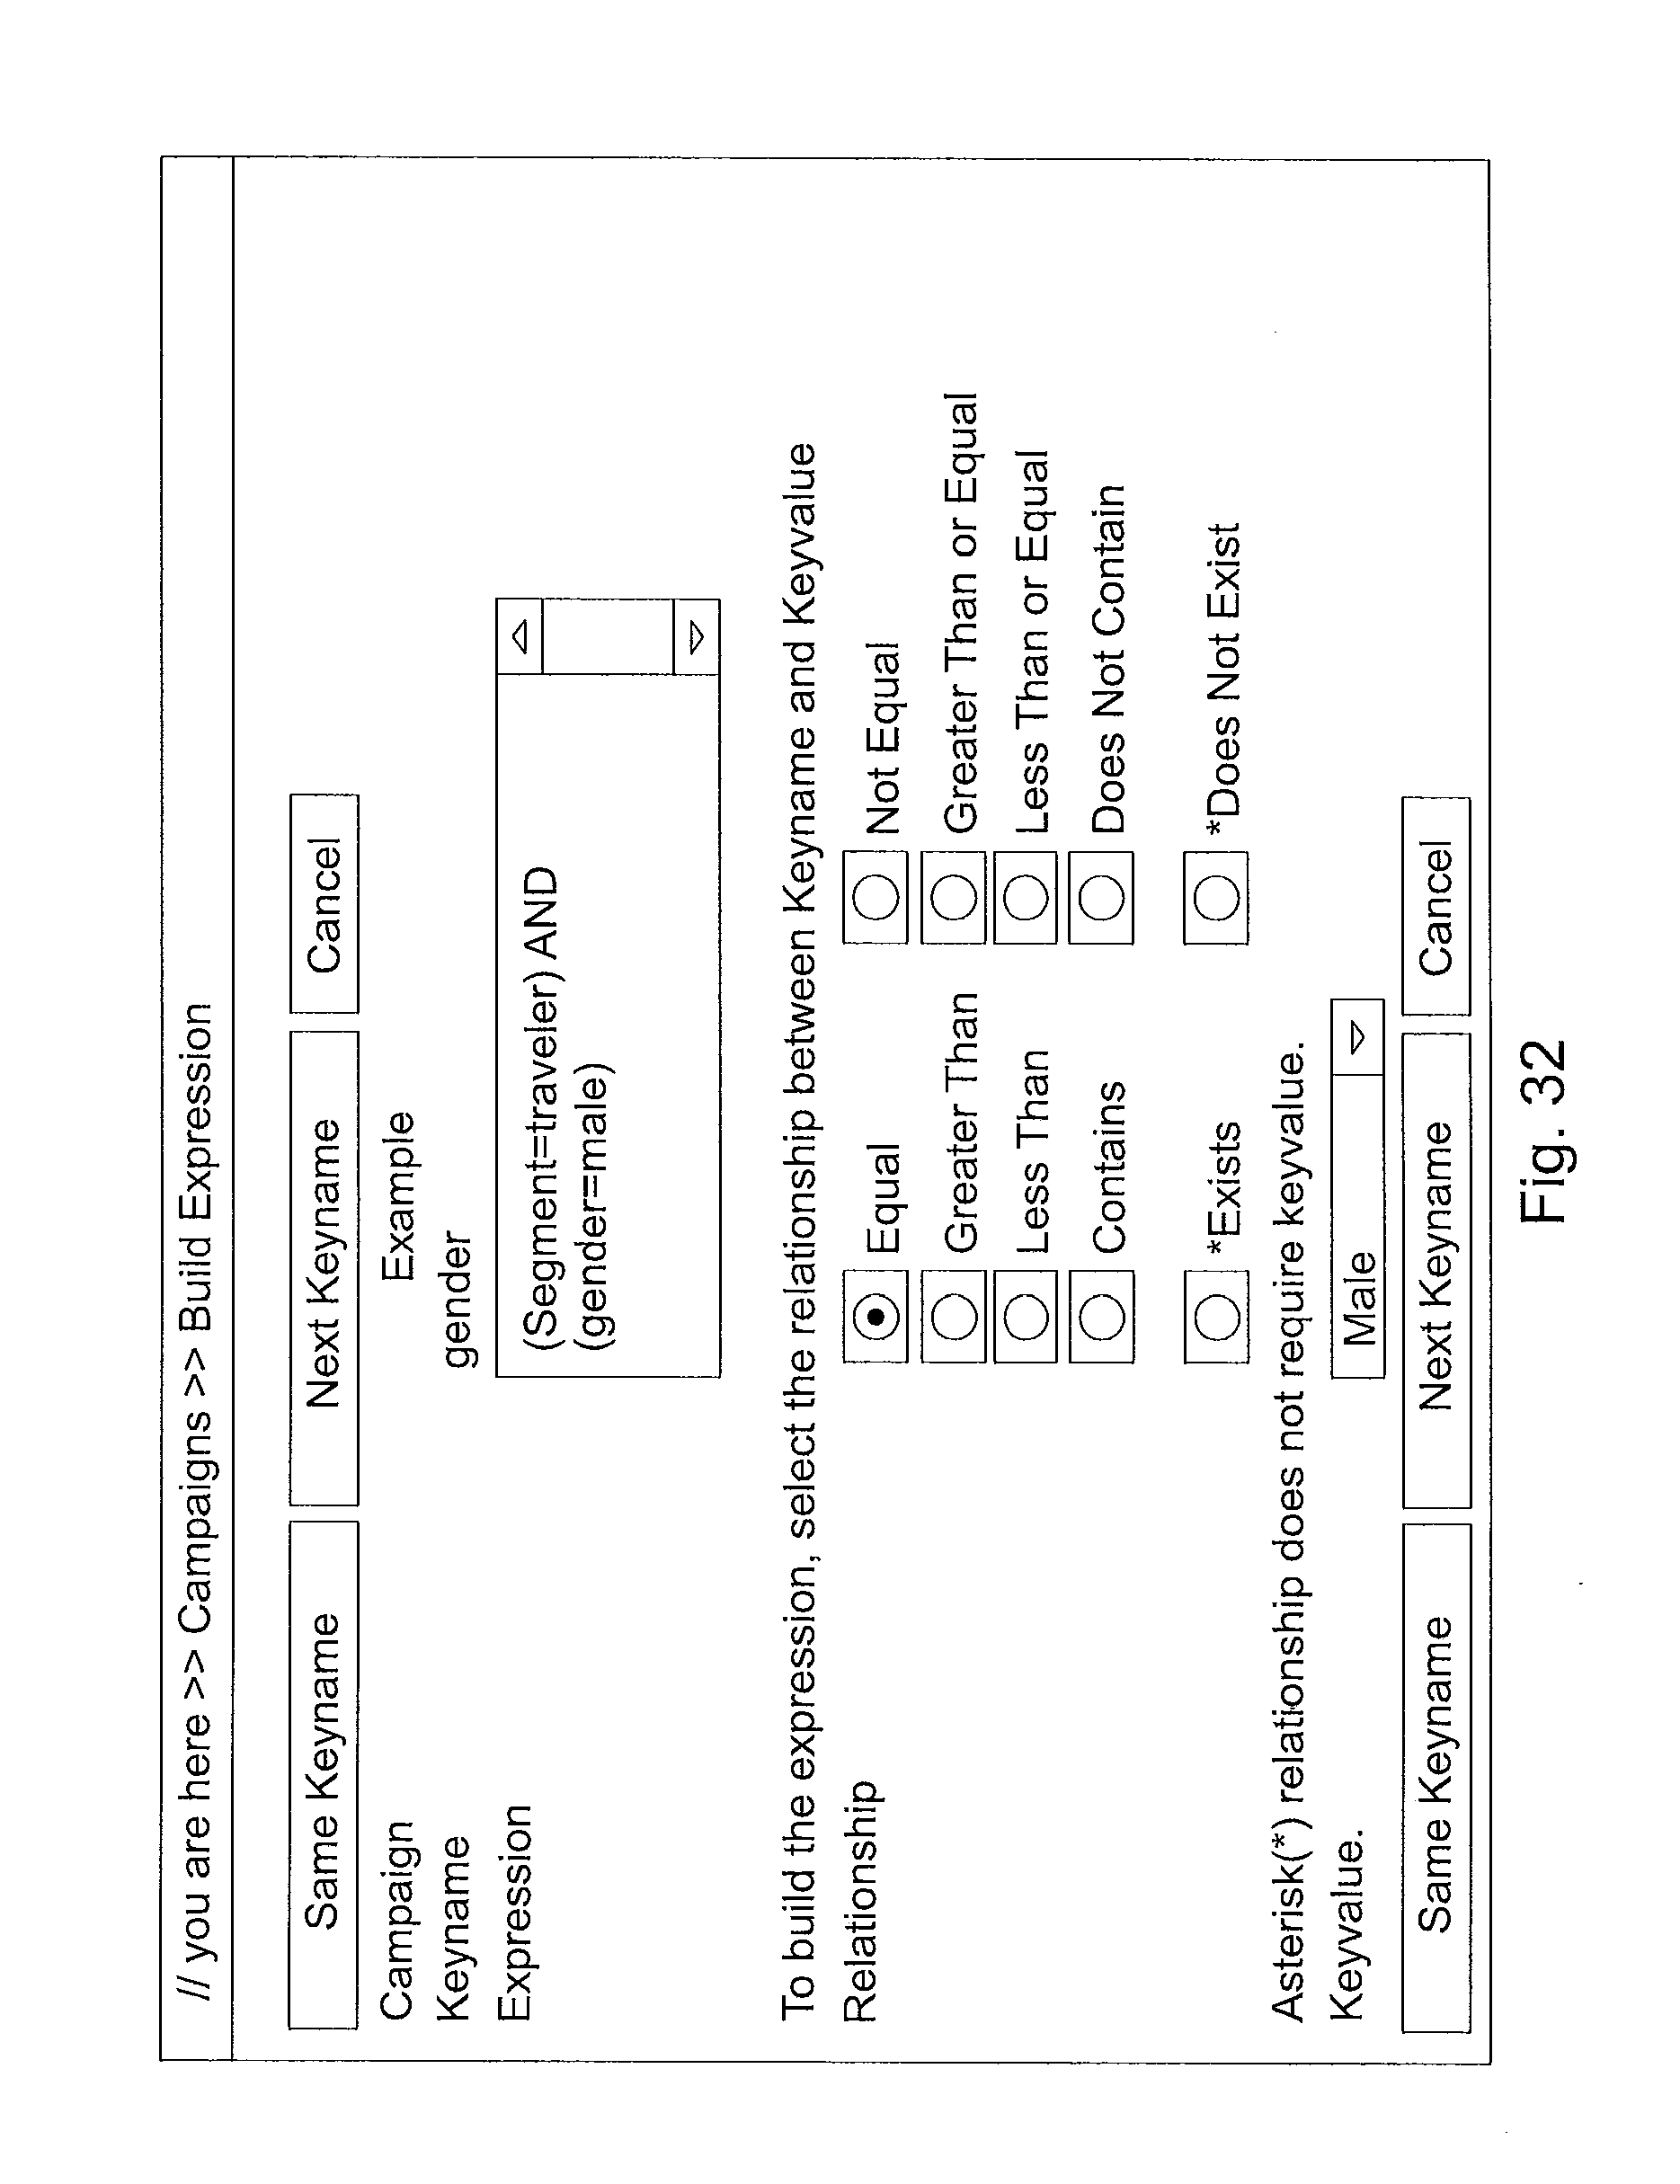 Chrysler Stereo Wiring Diagram Together With Sheet Tabs Definition